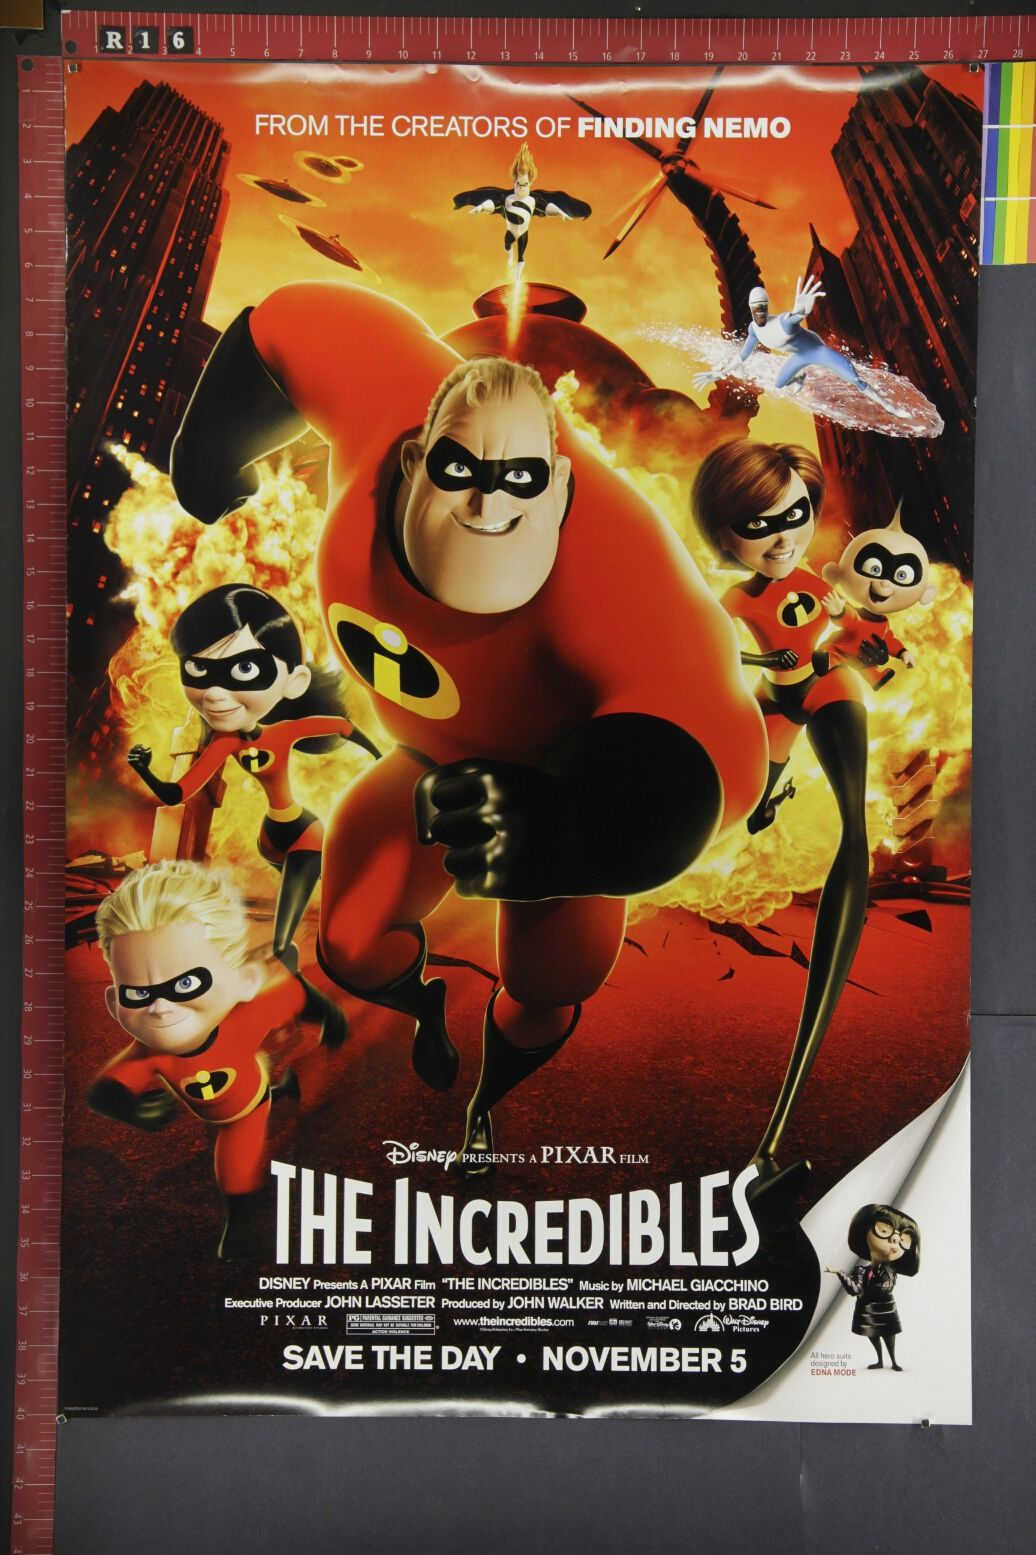 Movie Posters Original The Incredibles original animated